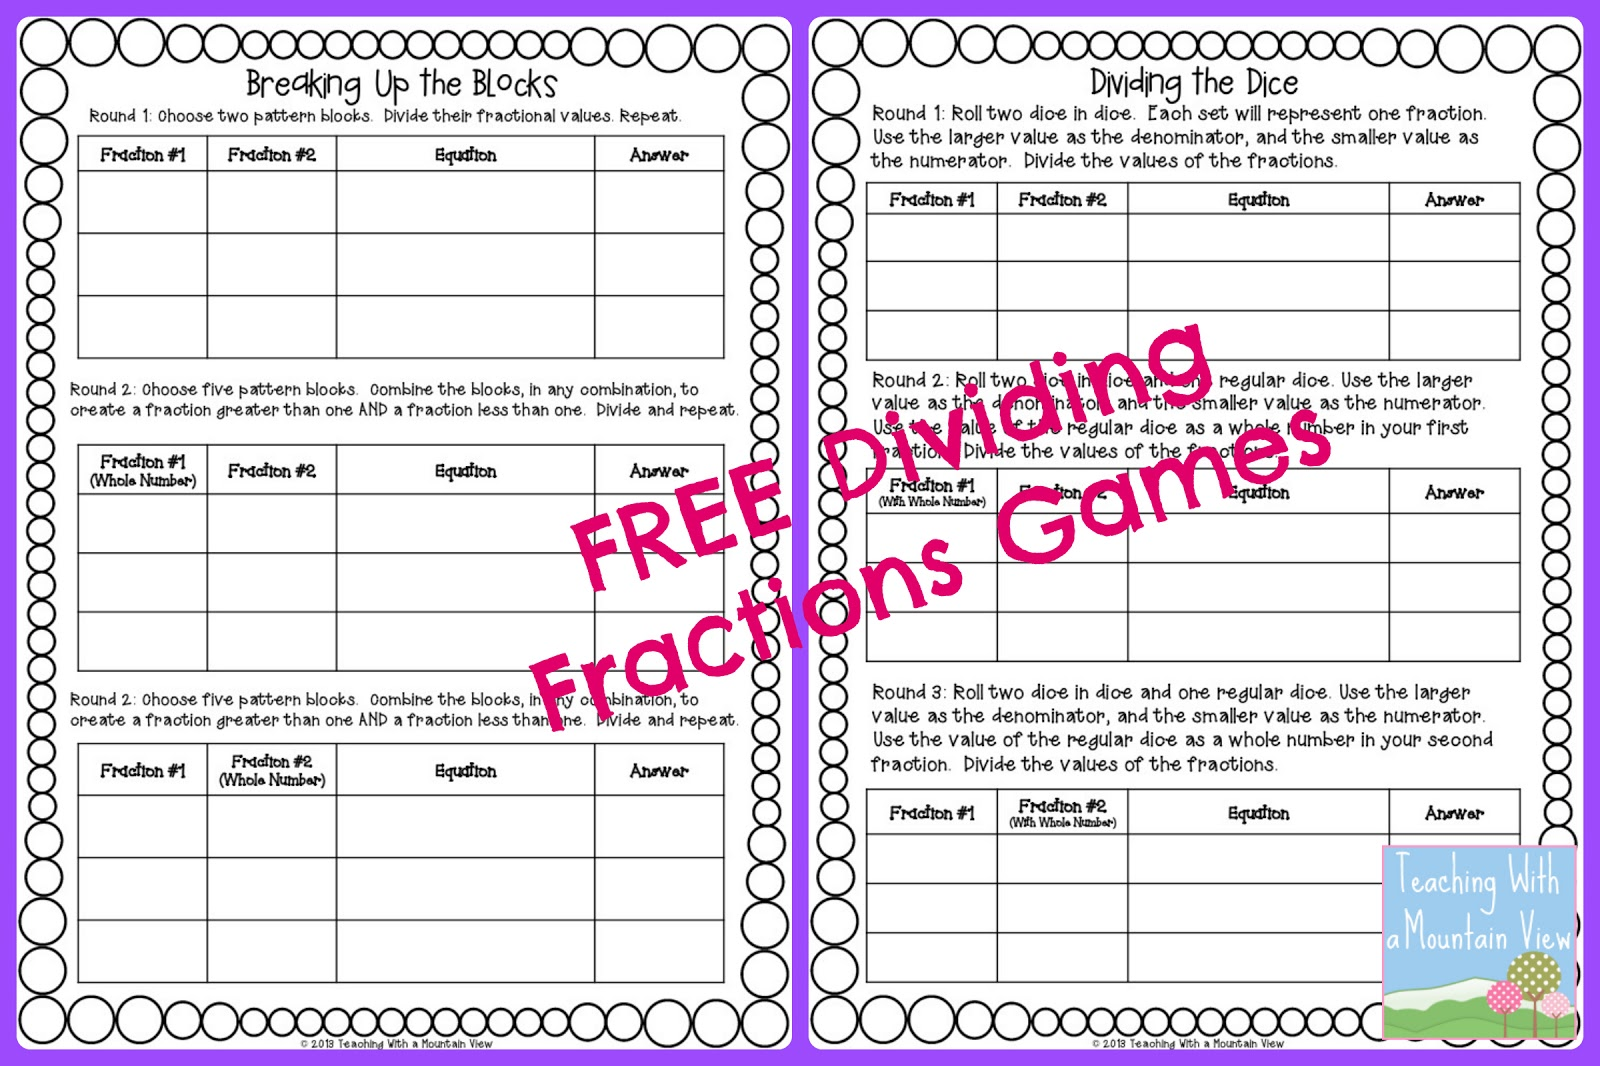 Teaching With a Mountain View Dividing Fractions Anchor Chart – Dividing Fractions Worksheet